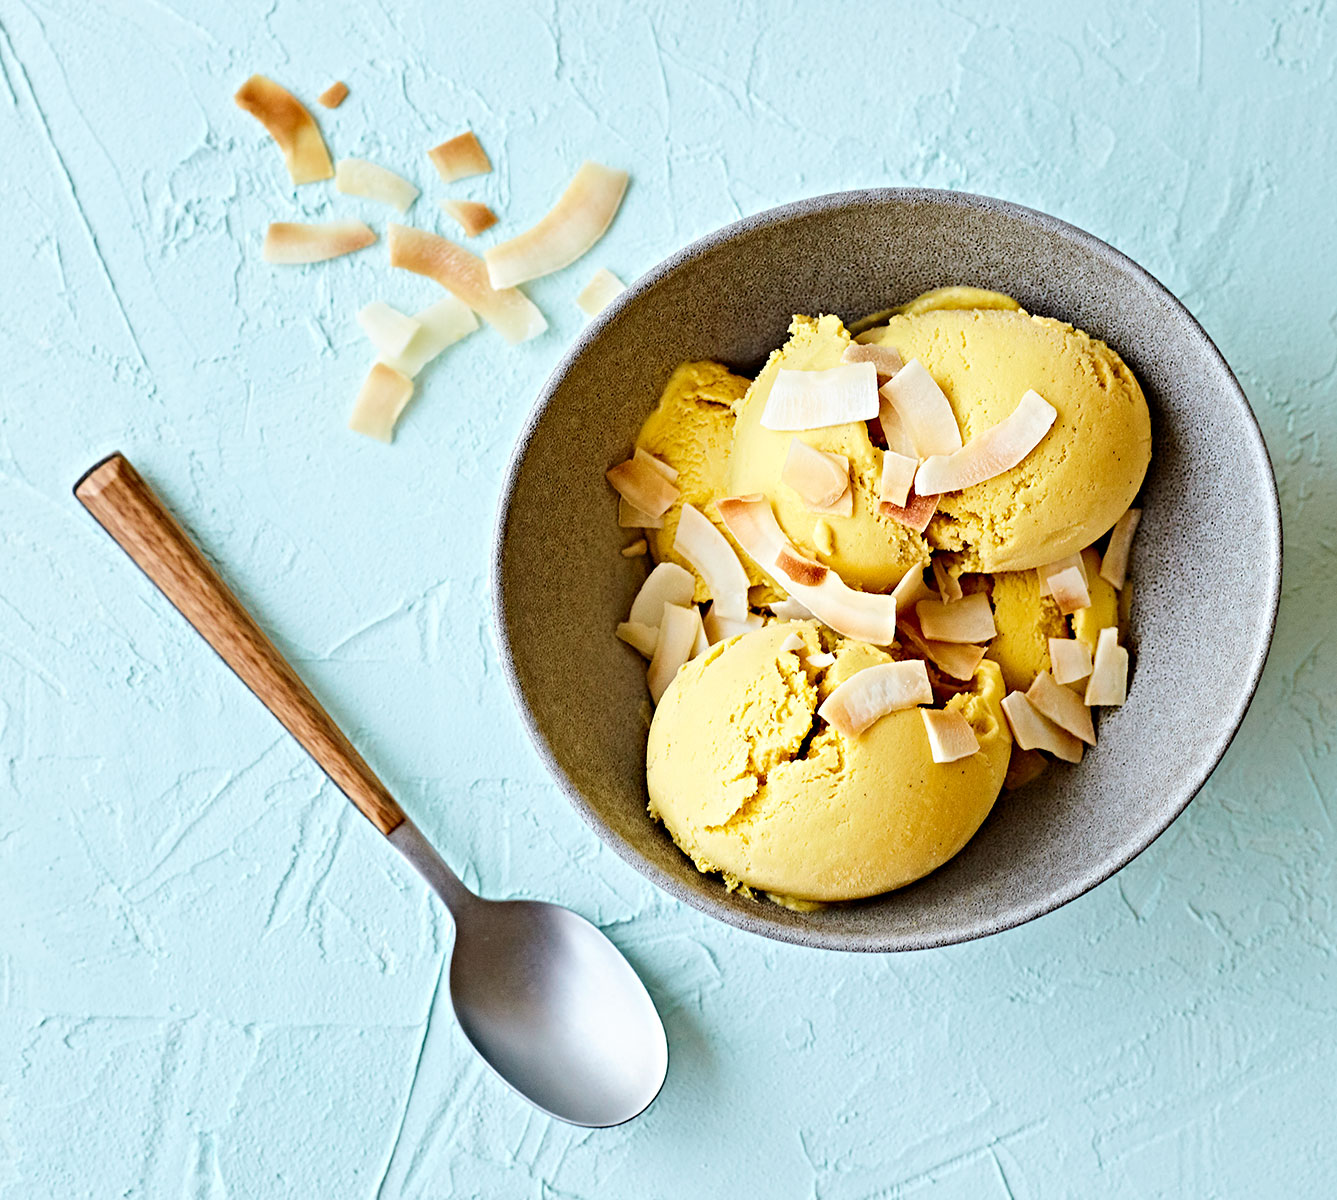 Mango coconut cream ice cream with roasted coconut in a bowl on a blue plaster table top.